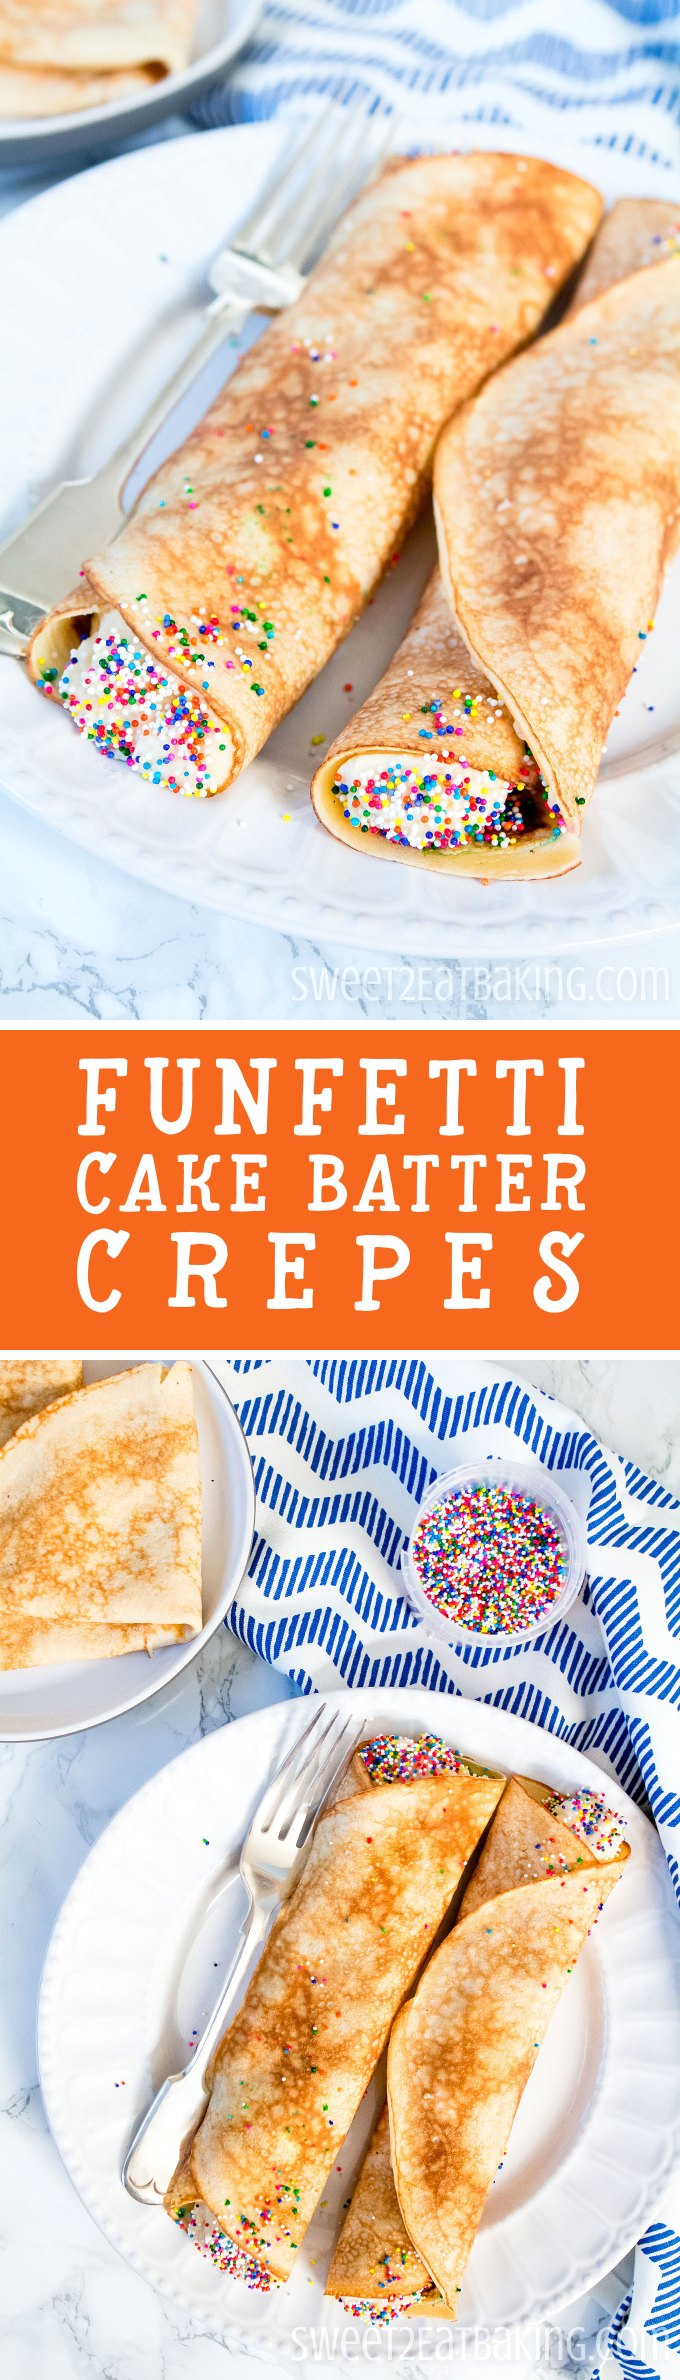 Funfetti Cake Batter Crêpes (Pancakes) Recipe by Sweet2EatBaking.com | These Crêpes taste just like cake batter and are the perfect treat this Shrove Tuesday (aka. Pancake Day or Pancake Tuesday). Made with cake mix both in the crêpe batter and the buttercream frosting, these crêpes will be your new favourite recipe